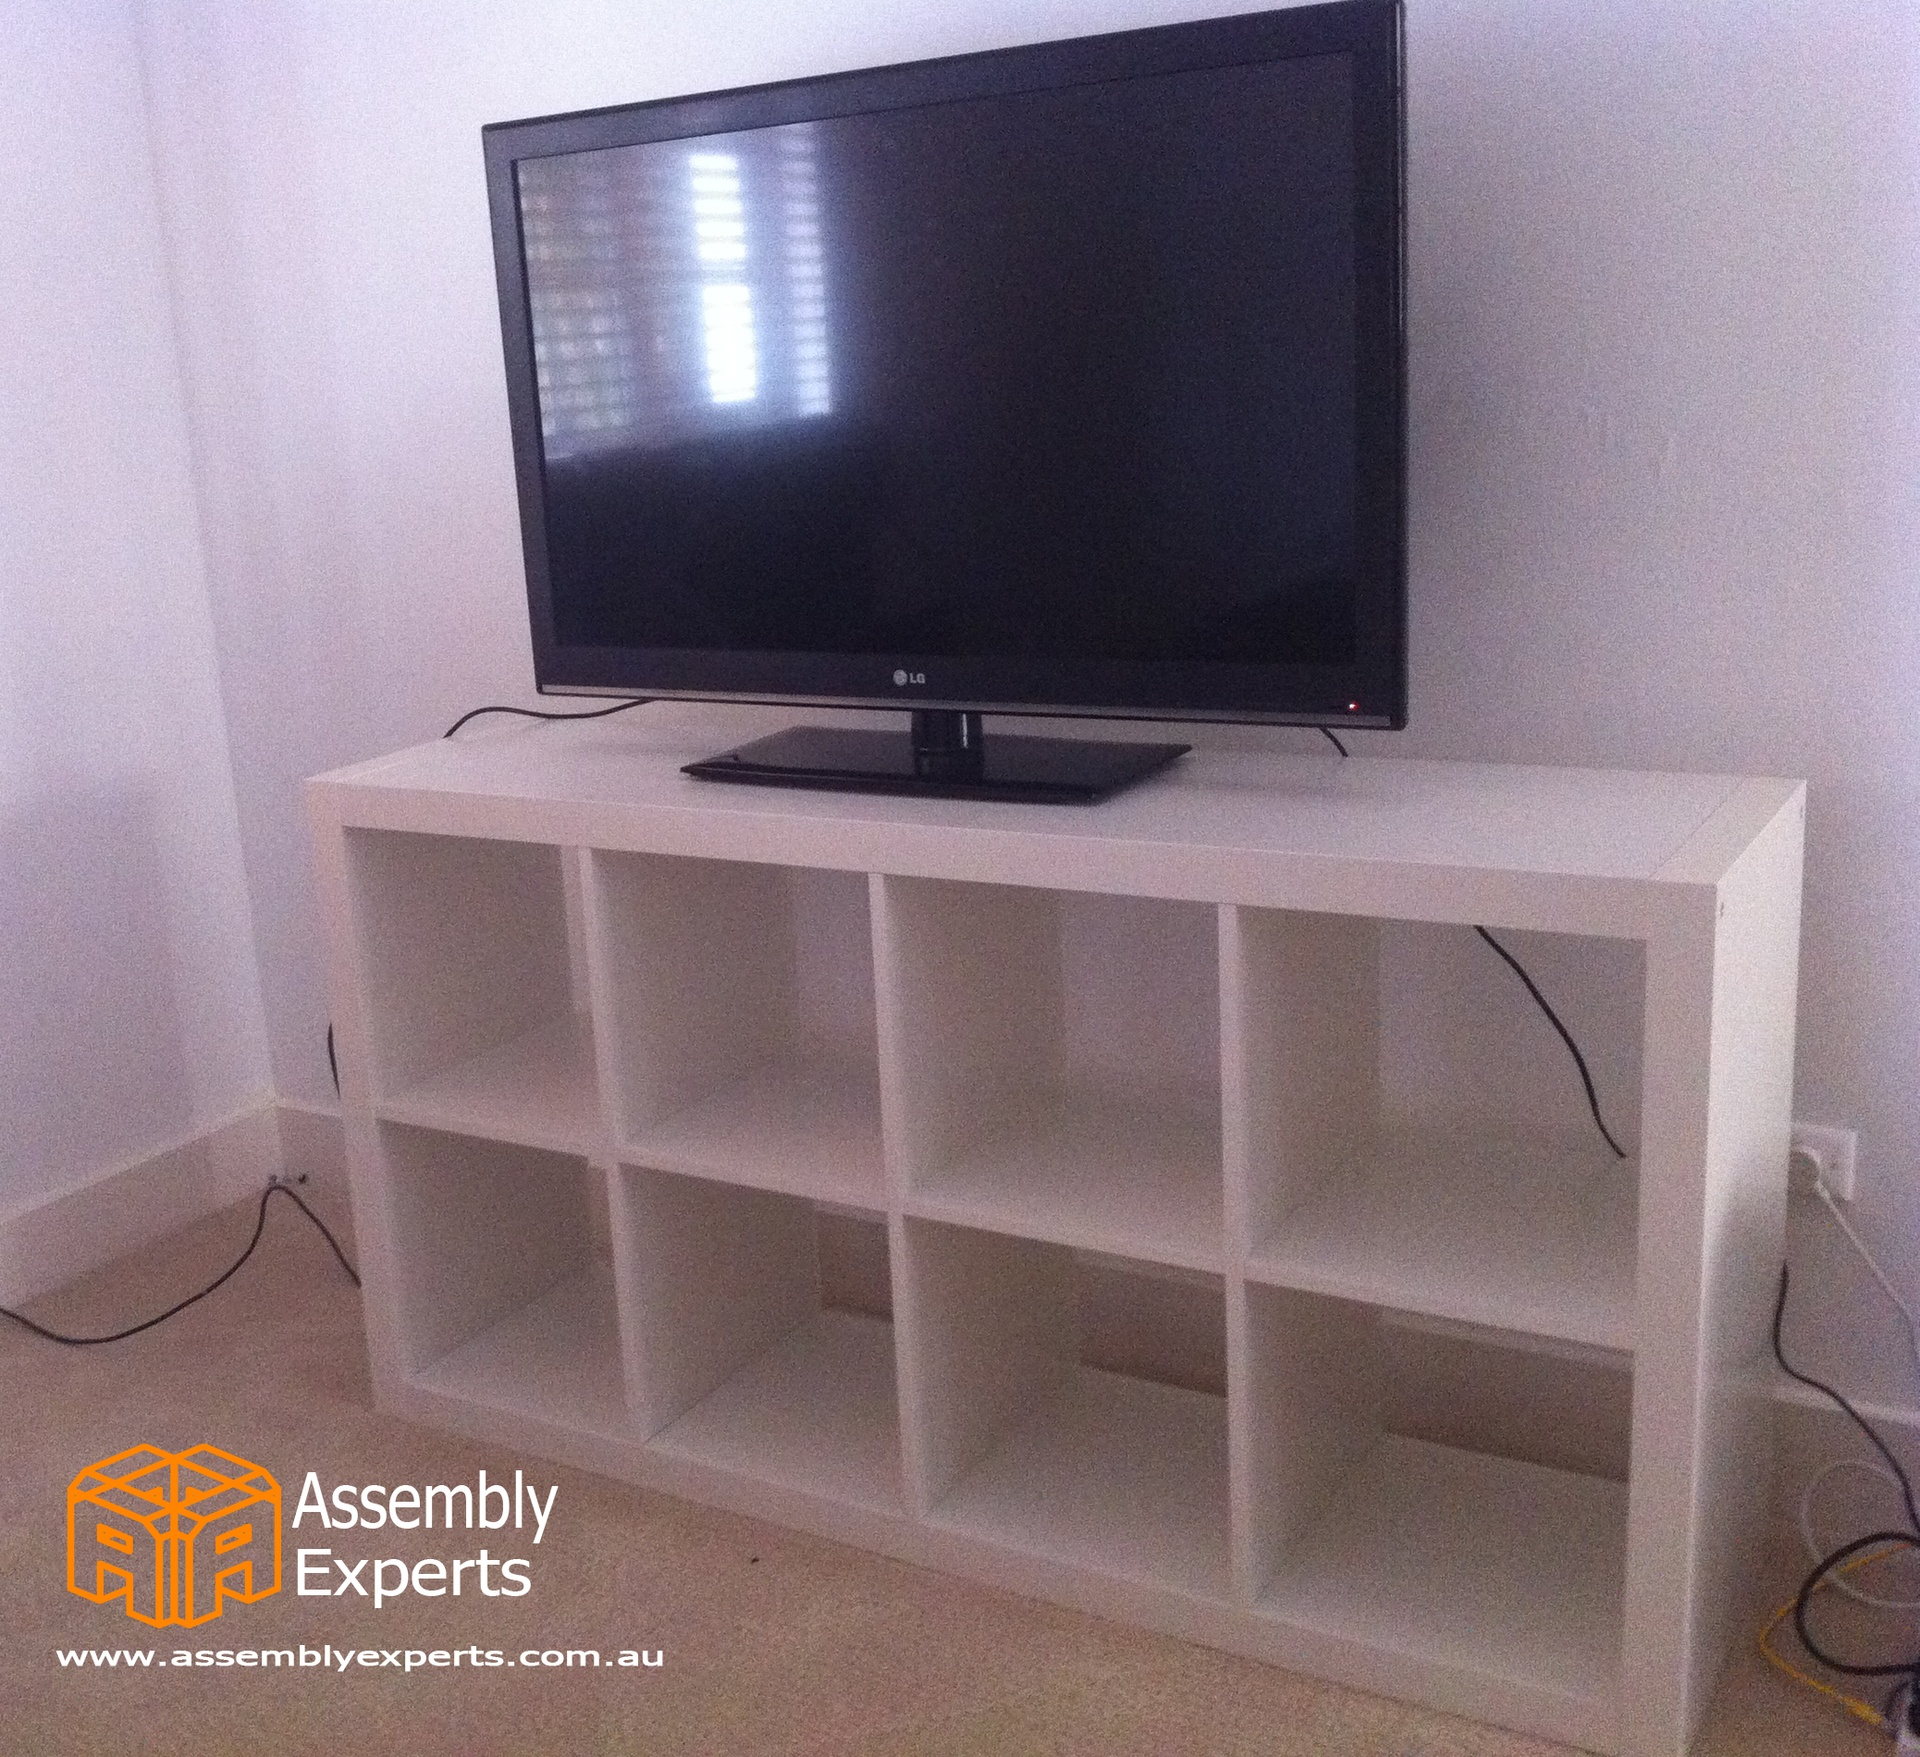 charming ikea expedit bookcase in white with tv with white wall and wooden floor